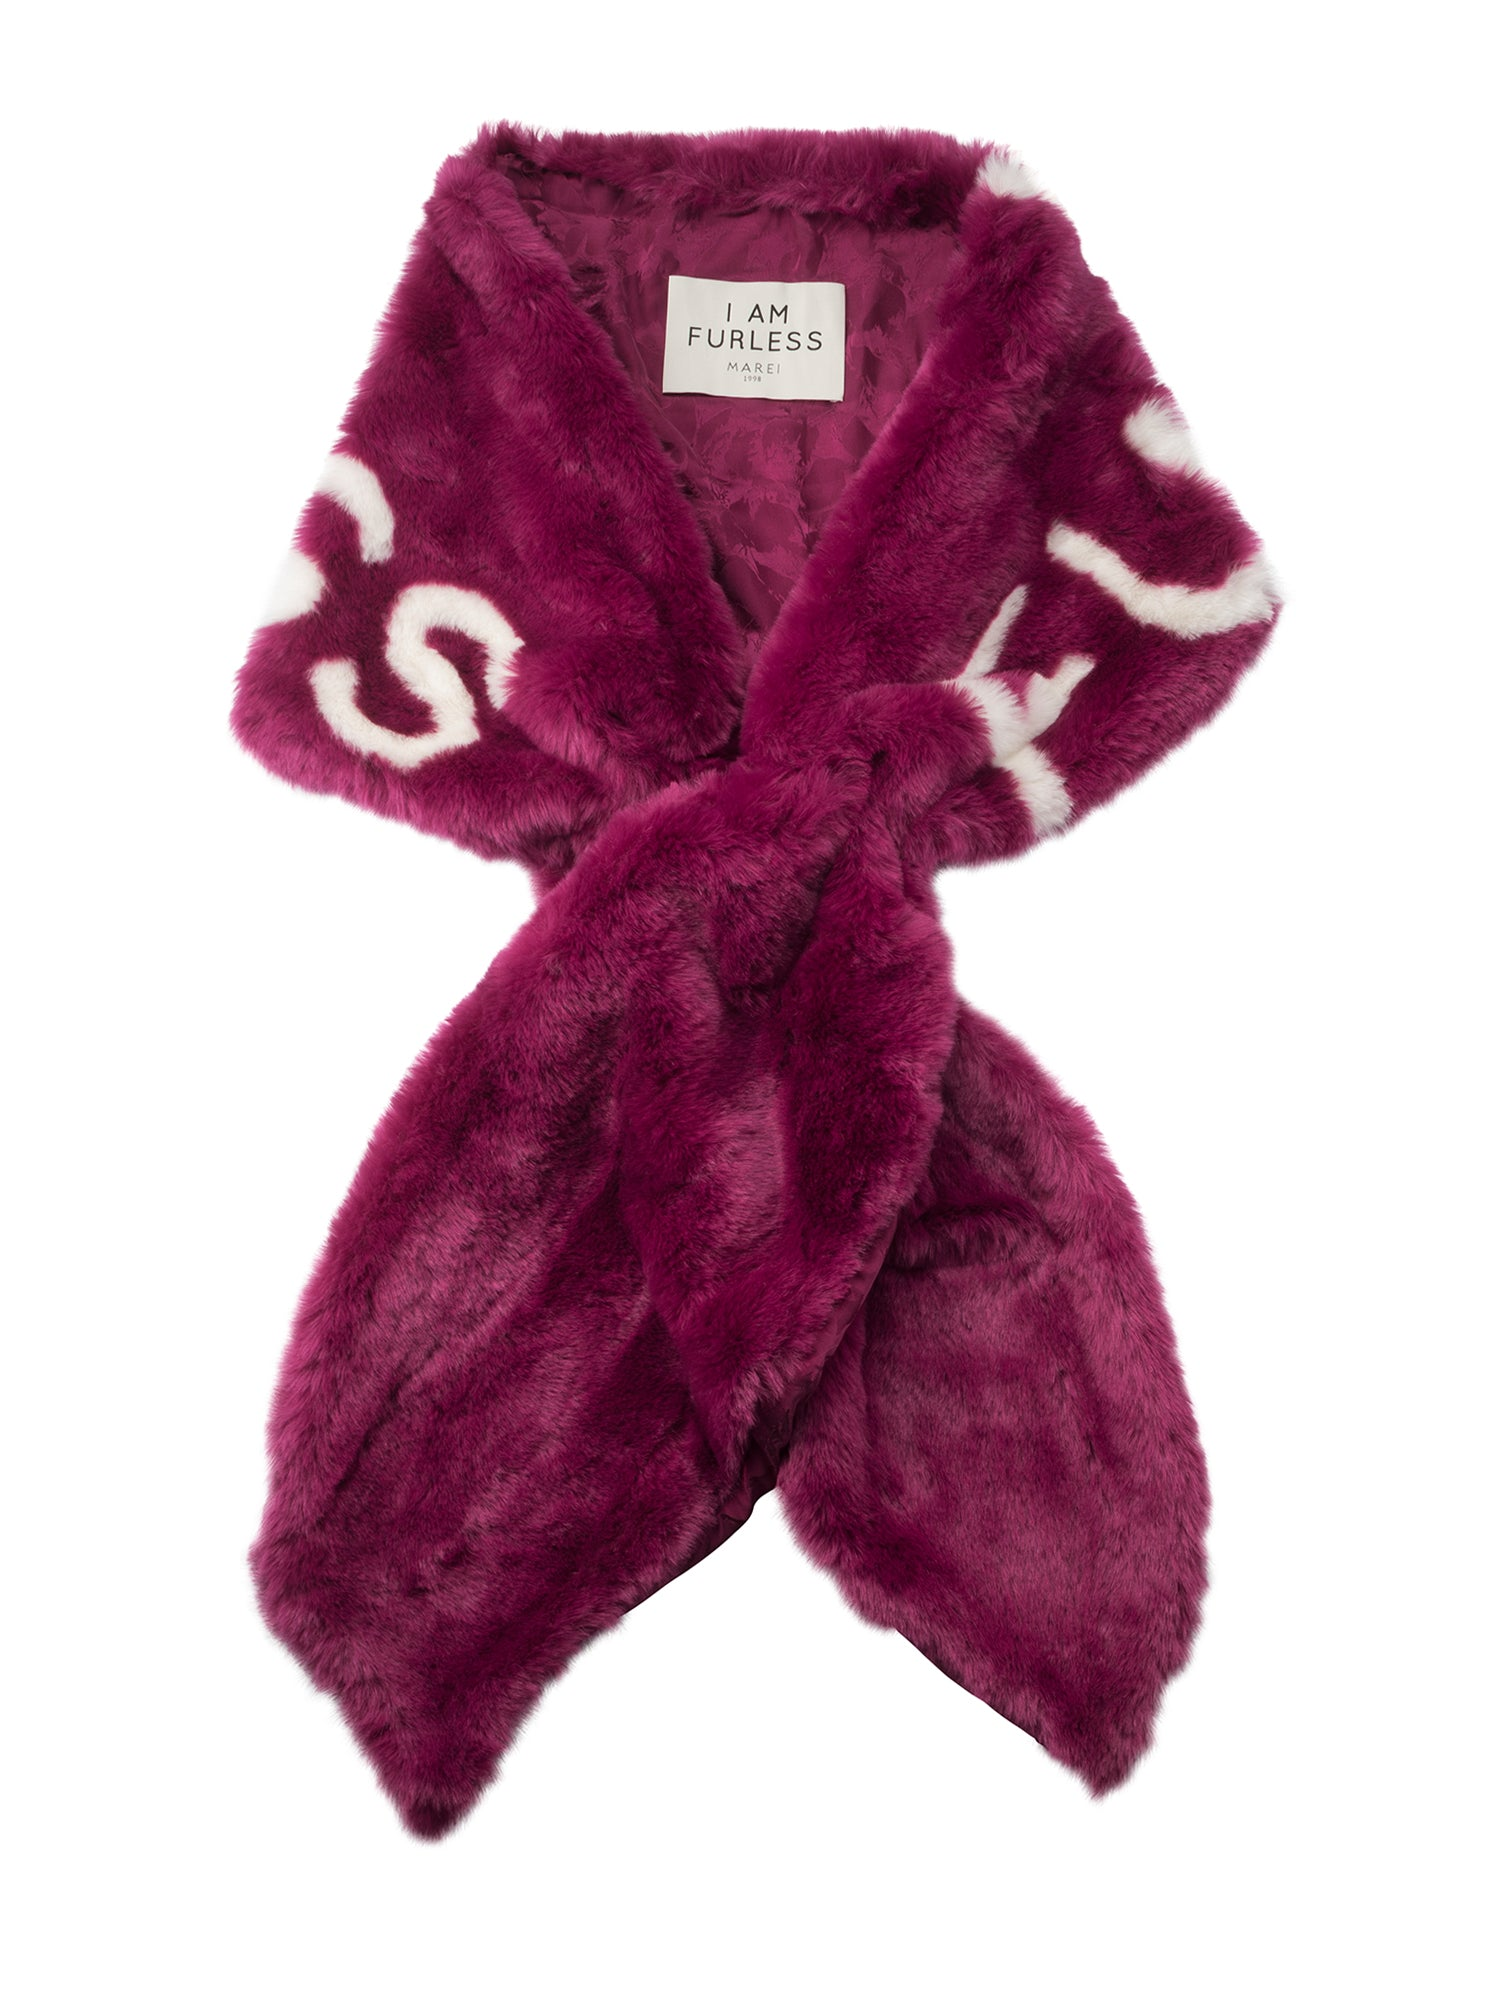 A Packshot Of Marei1998's Furless Faux Fur Stole In Off White Color. Exclusively Designed As Part Of Marei1998's Furless Label, This Stole Is A Bold Statement Piece. Cut In A Wide Silhouette, It Is Crafted From Plush Faux Fur In Bold Raspberry Hue, Featuring Jacquard Design In Off White.